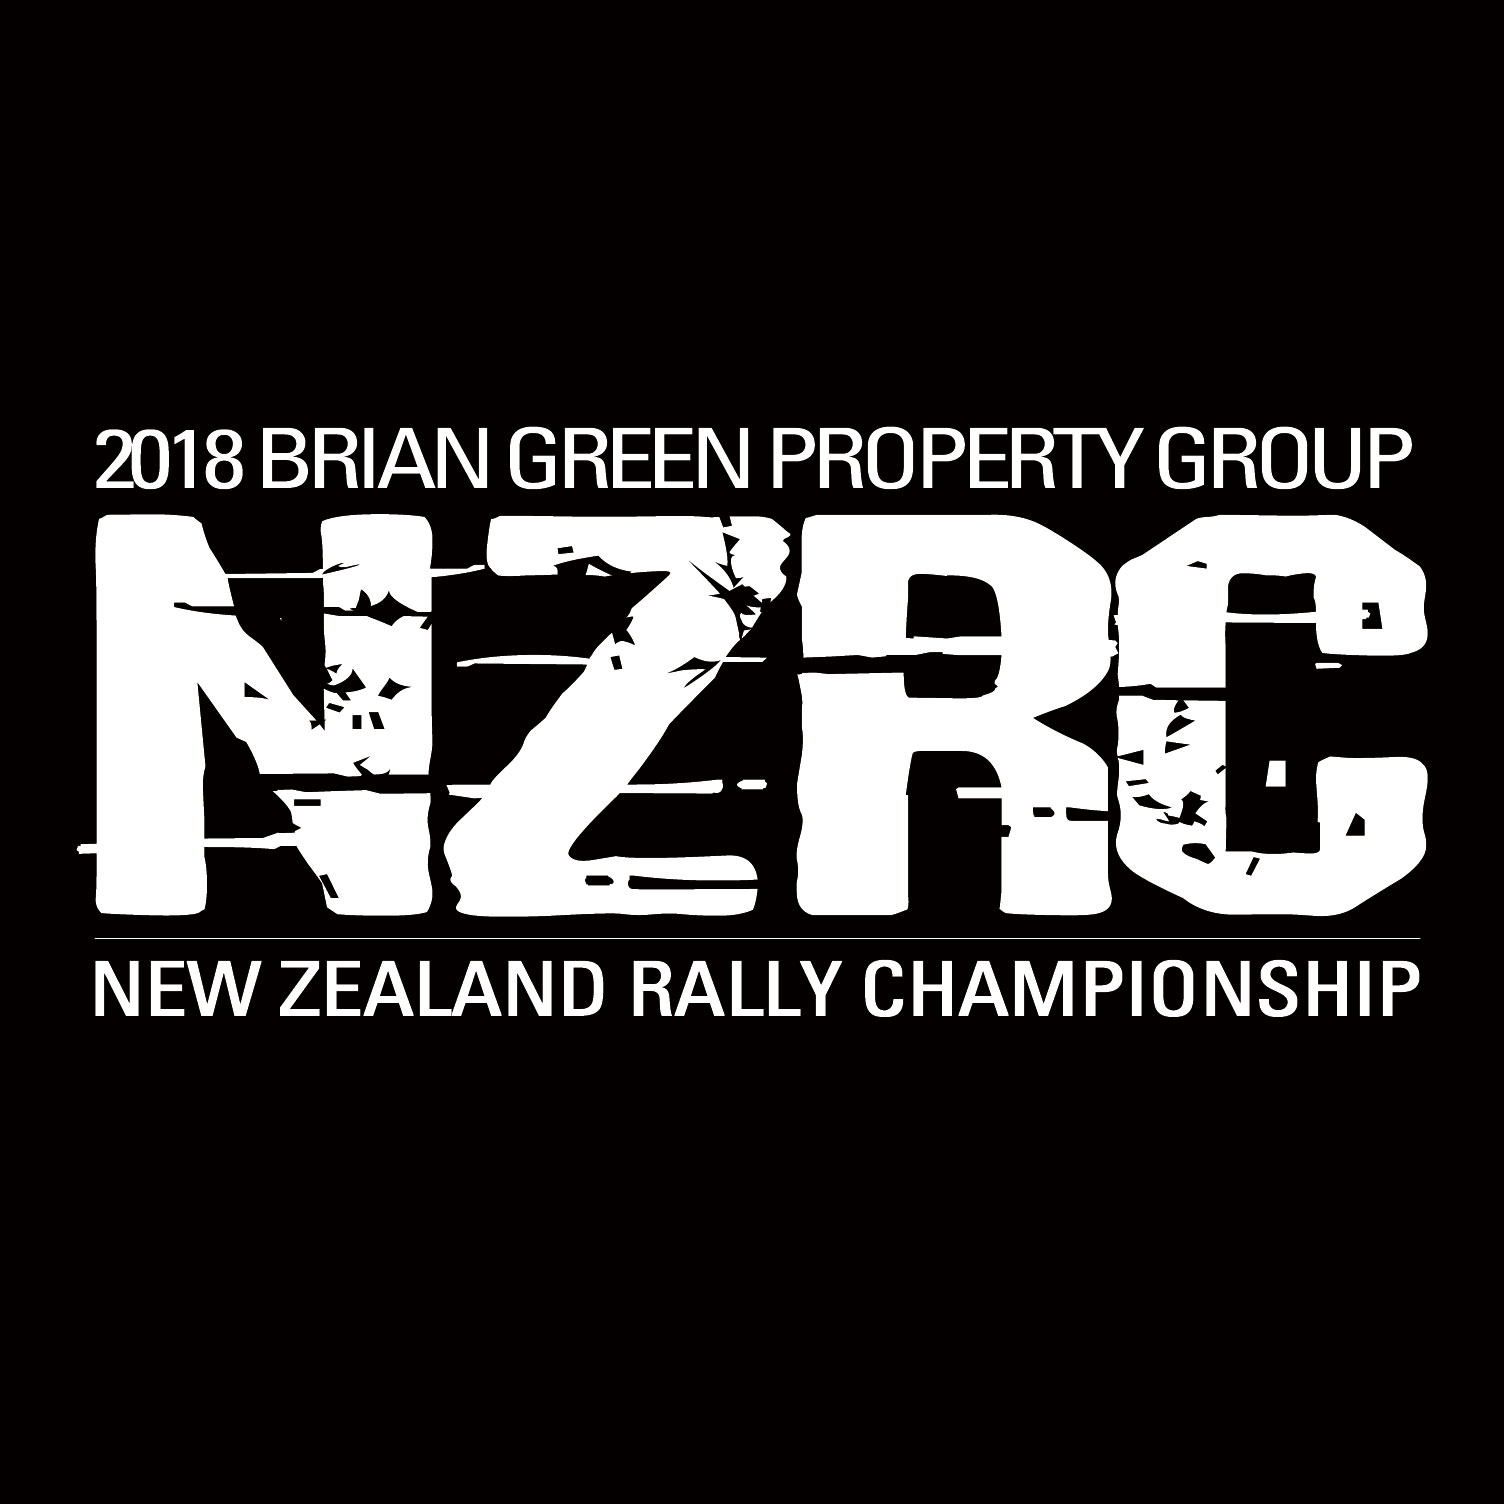 Quinn launches Kiwi assault on NZRC | :: Brian Green Property Group New Zealand Rally Championship ::